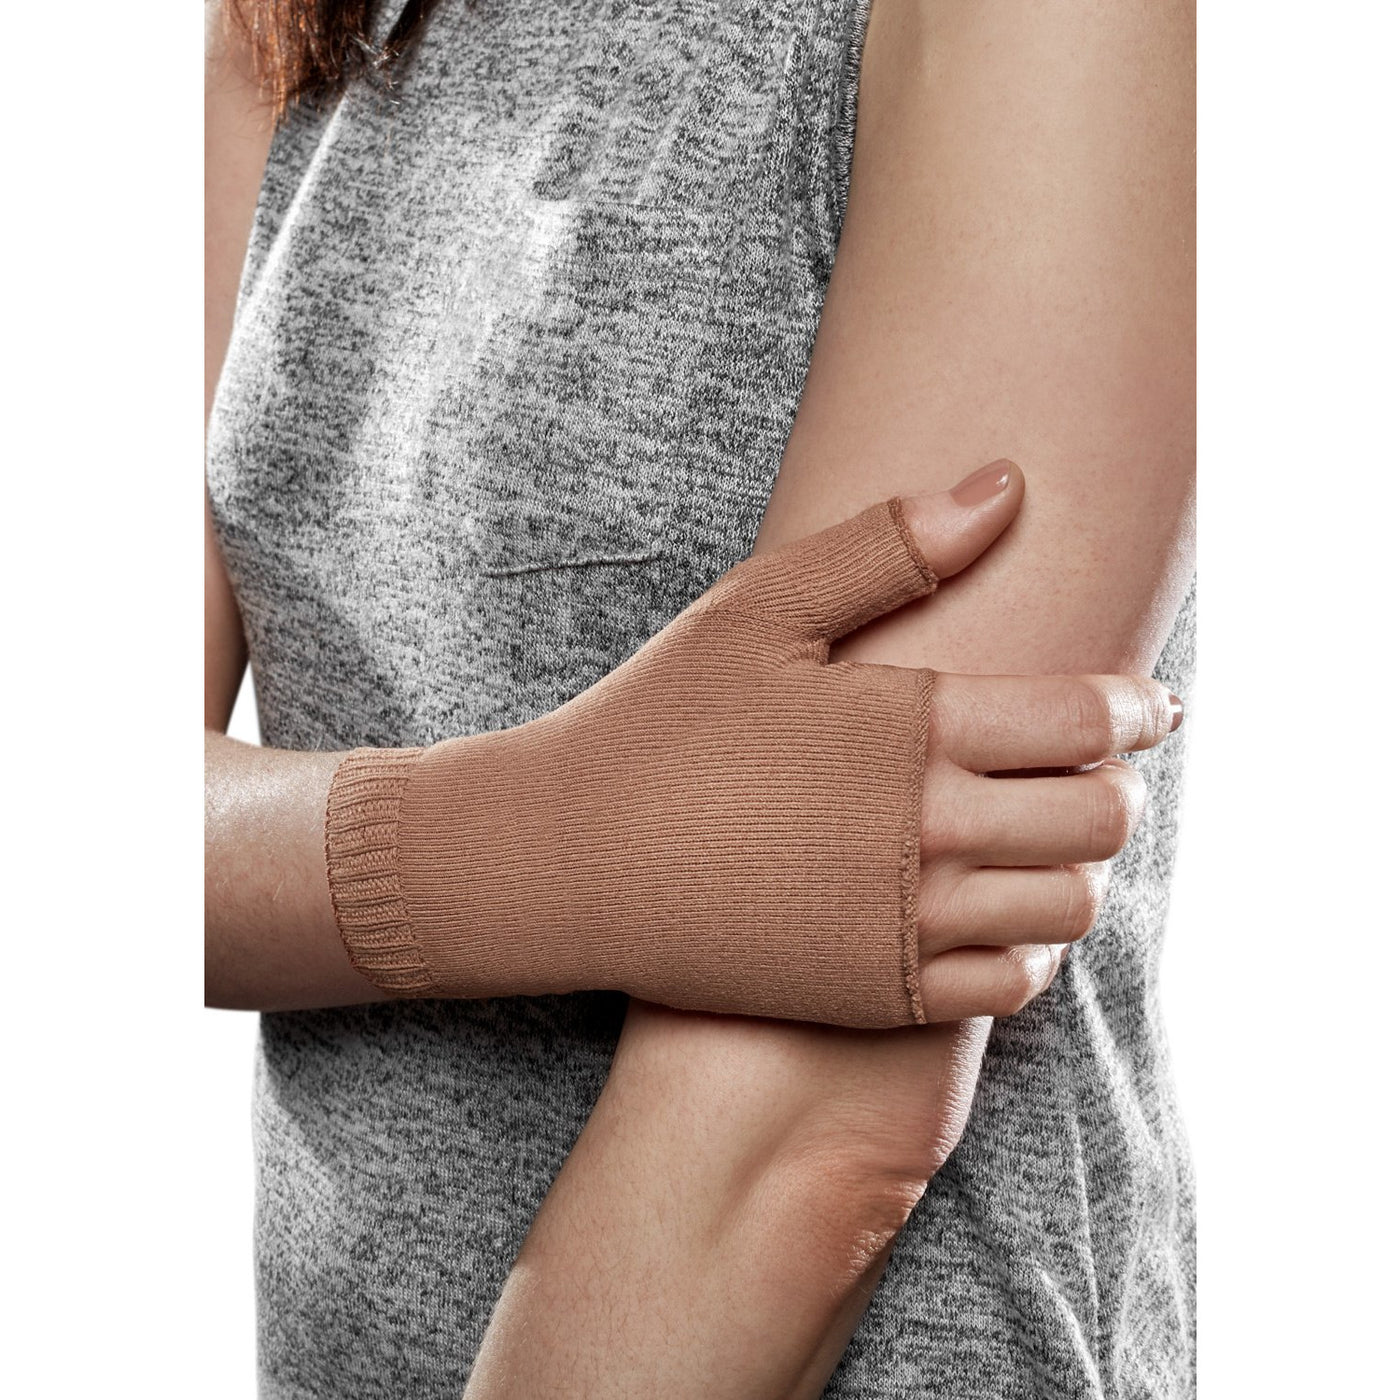 63a1b76630 BrightLife Direct. Home Therafirm EASE Lymphedema Gauntlet 20-30 mmHg.  Hover to zoom